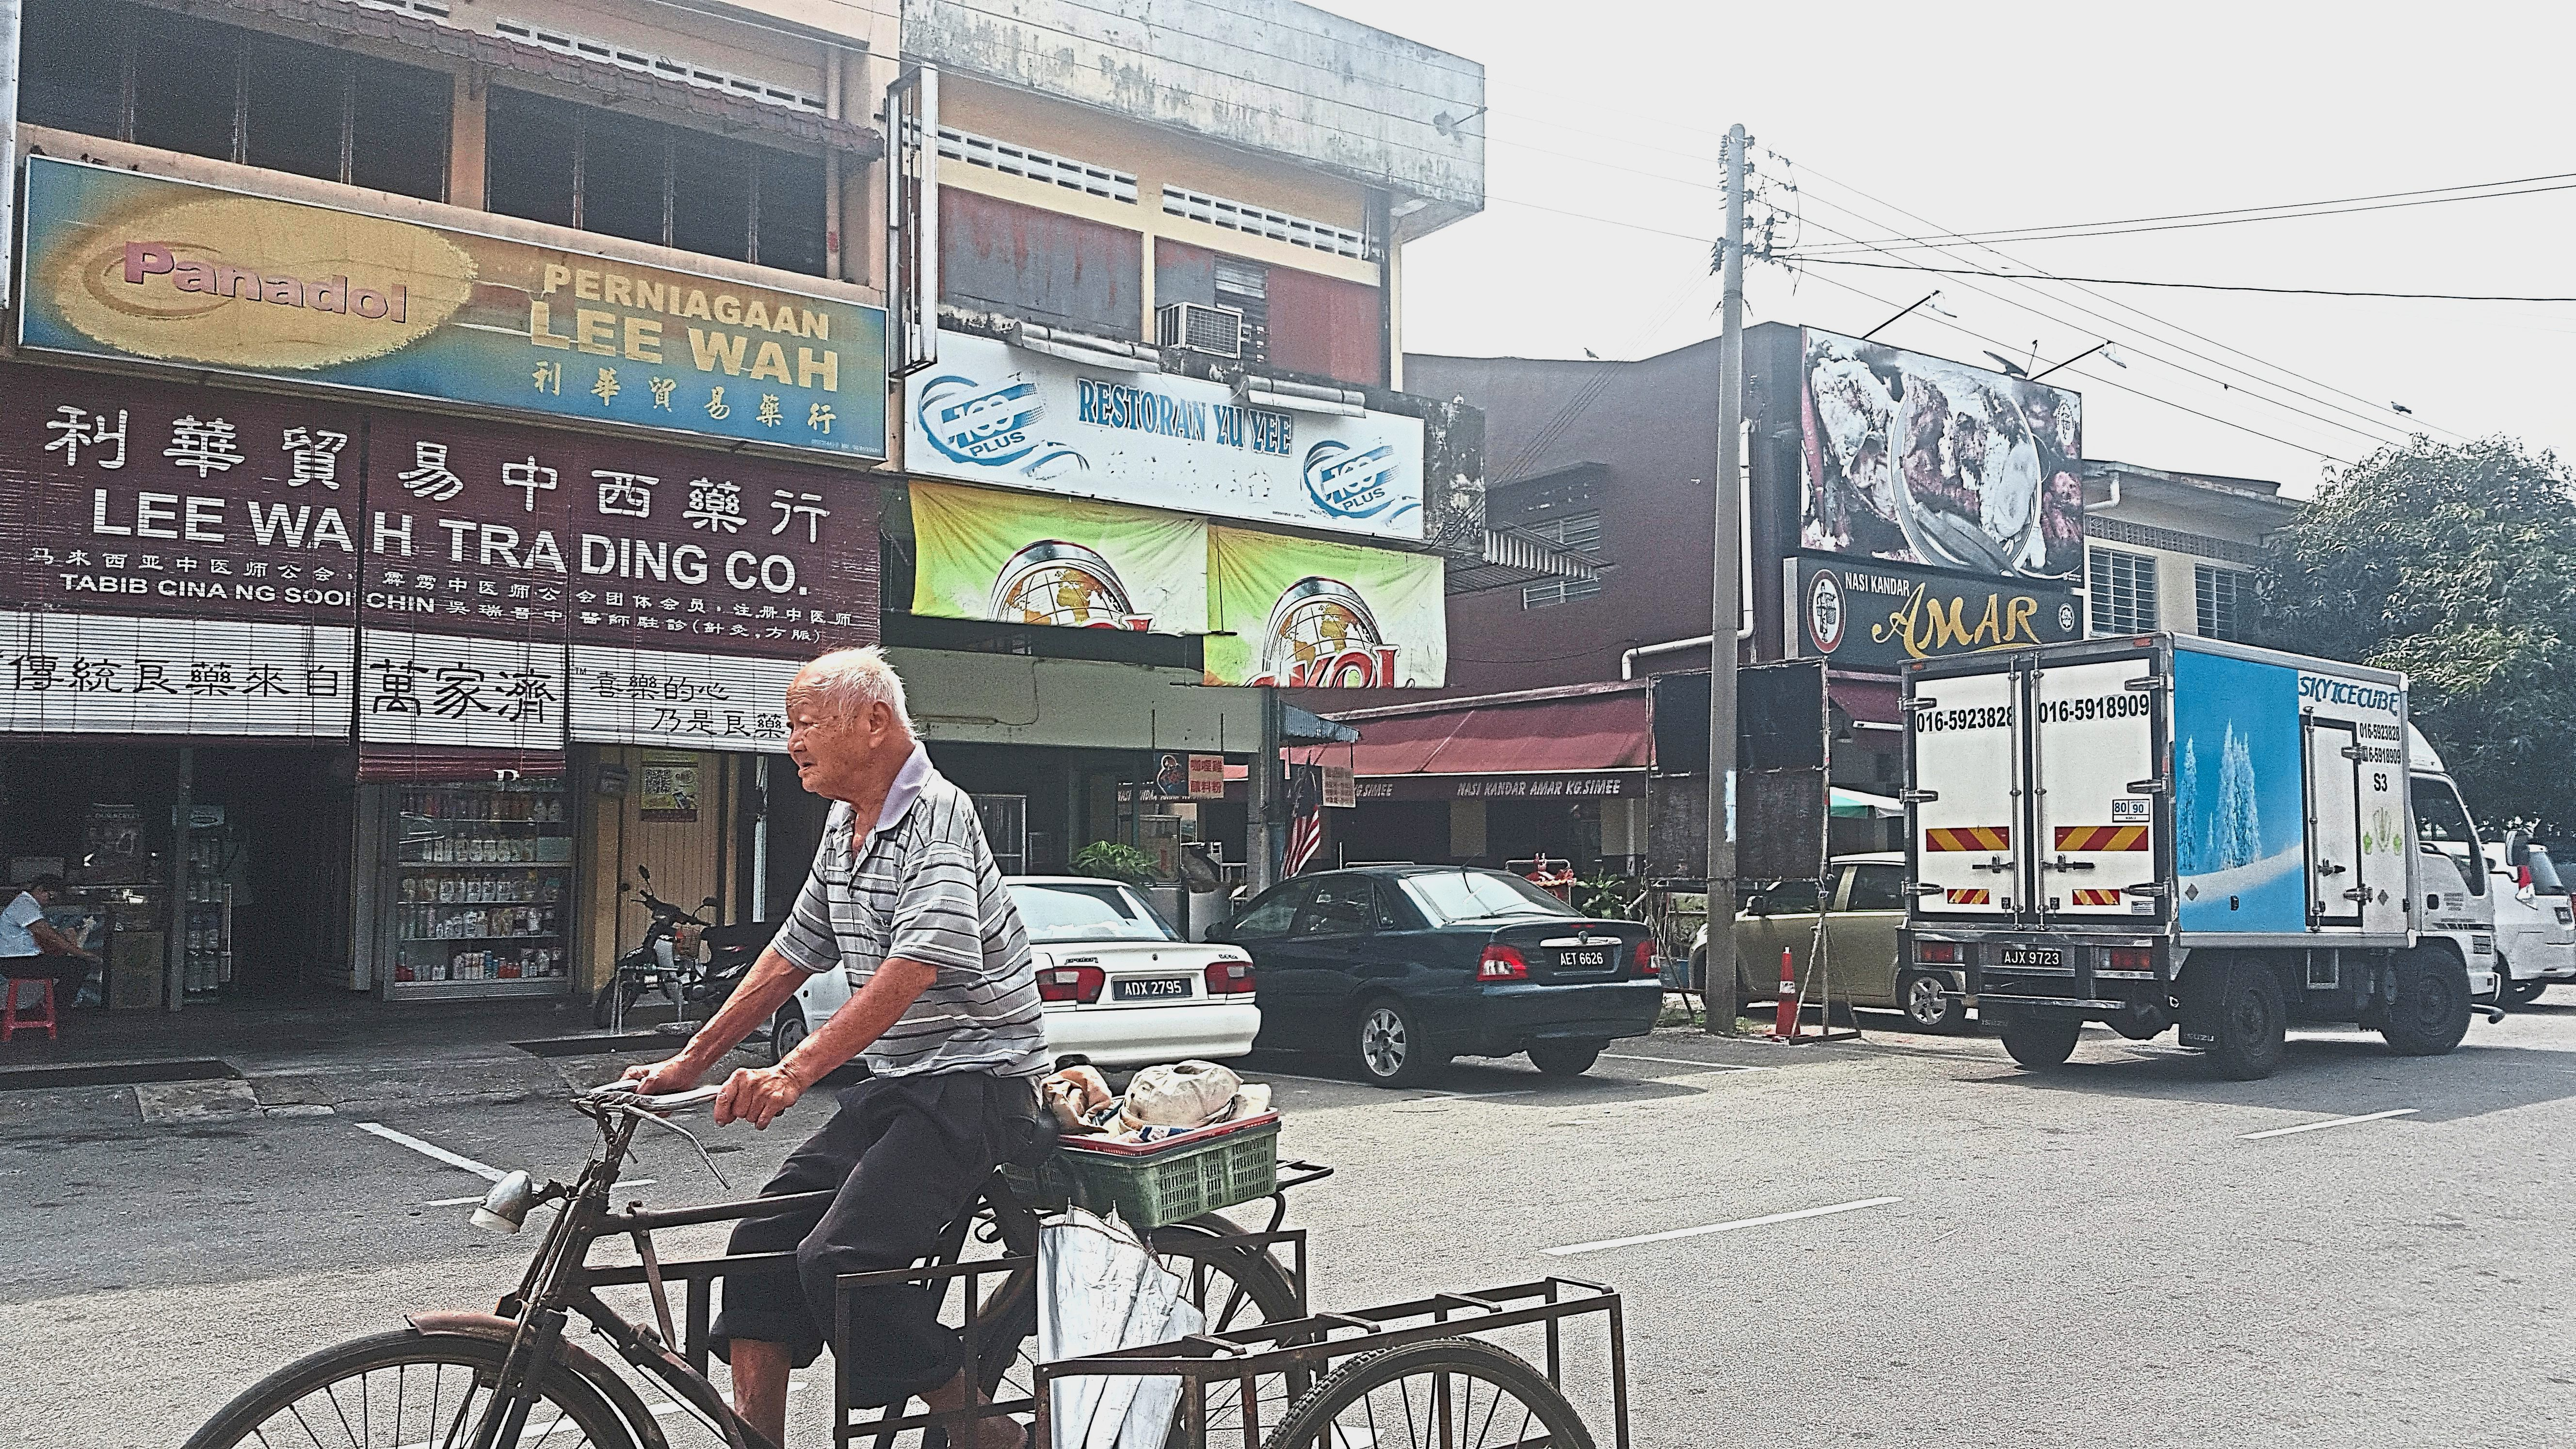 The village may have evolved in many ways over the last seven decades but many villagers lead a simple life with some opting to use tricycles to move around.